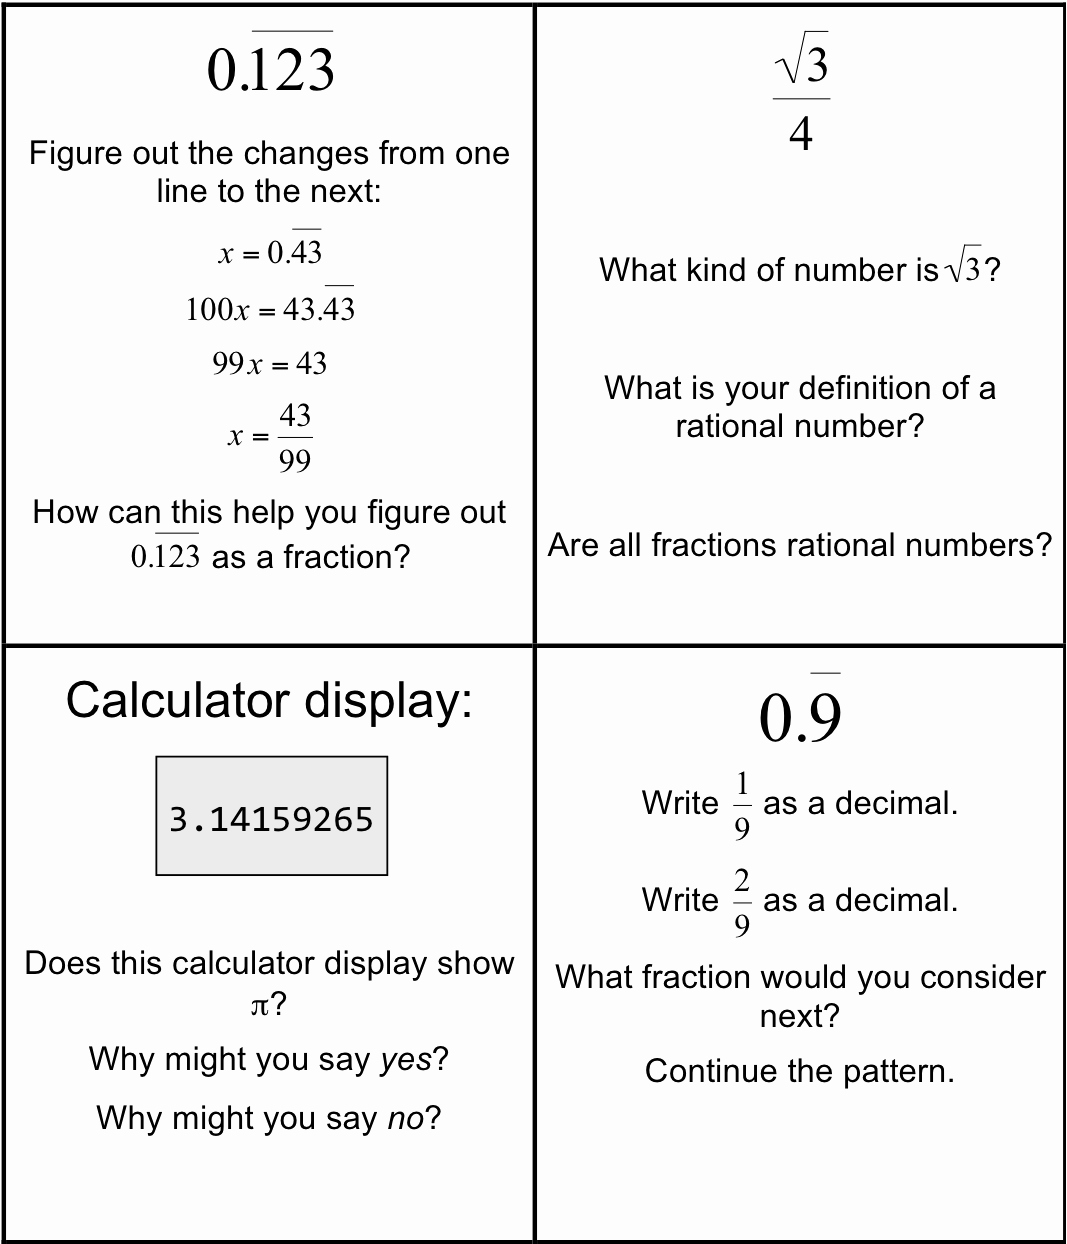 Comparing Rational Numbers Worksheet Luxury Identify Rational and Irrational Numbers Worksheet the